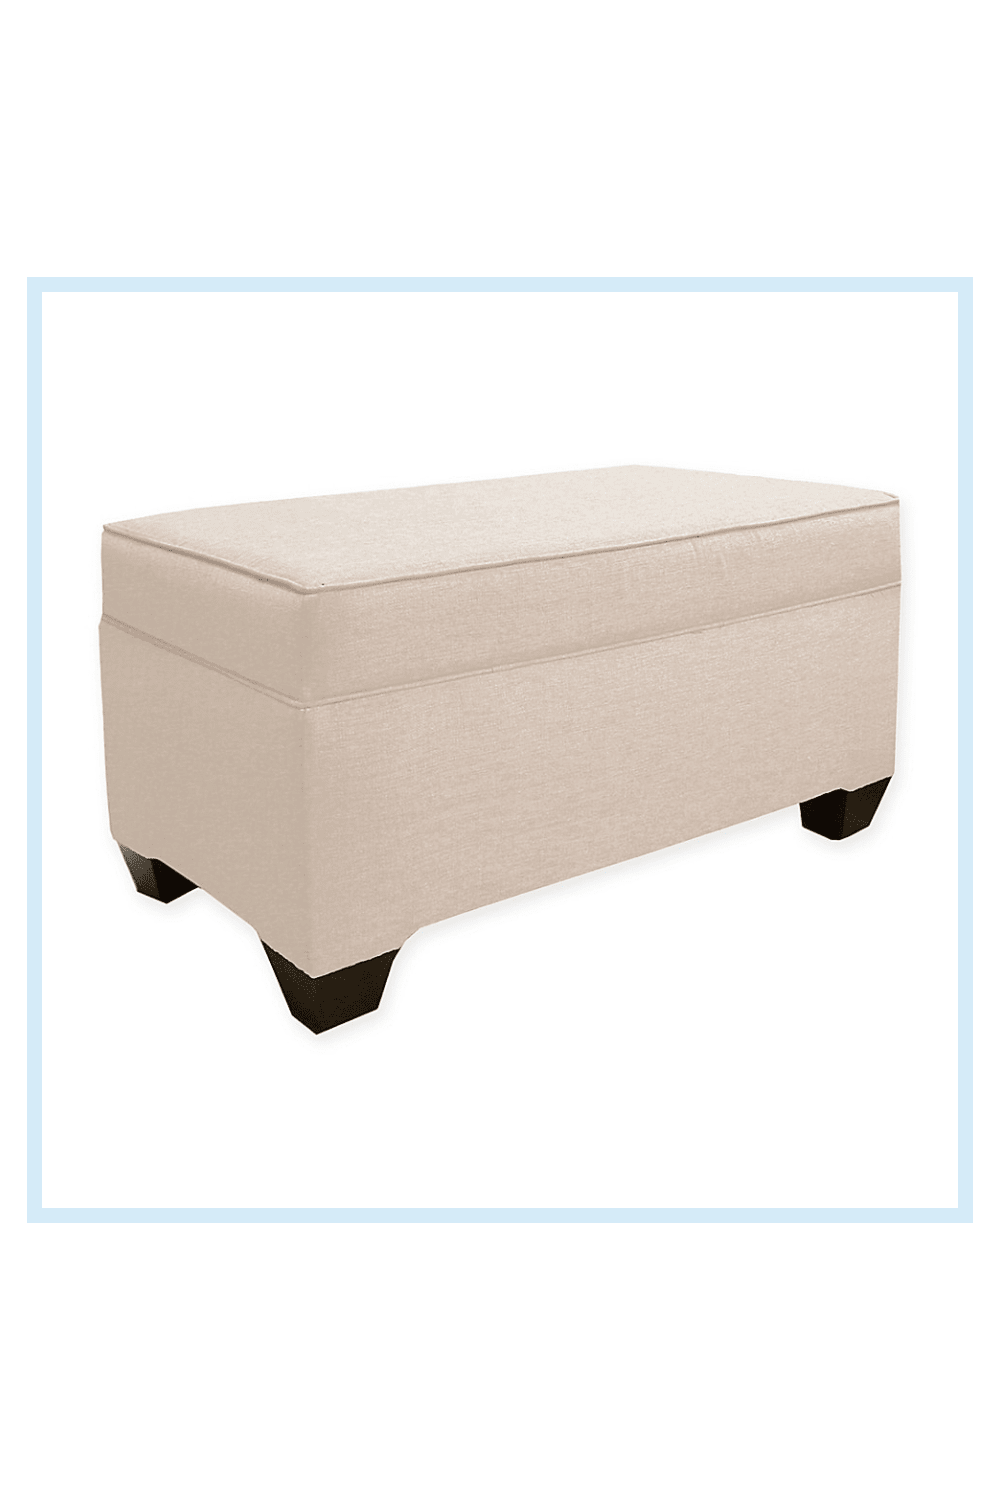 Skyline Furniture   Livonia Storage Bench In Ivory - Add innovative style to your living space with the Livonia Storage Bench. The Livonia Storage Bench is finely upholstered in sumptuous fabric and well designed with ample storage space for optimal organization.